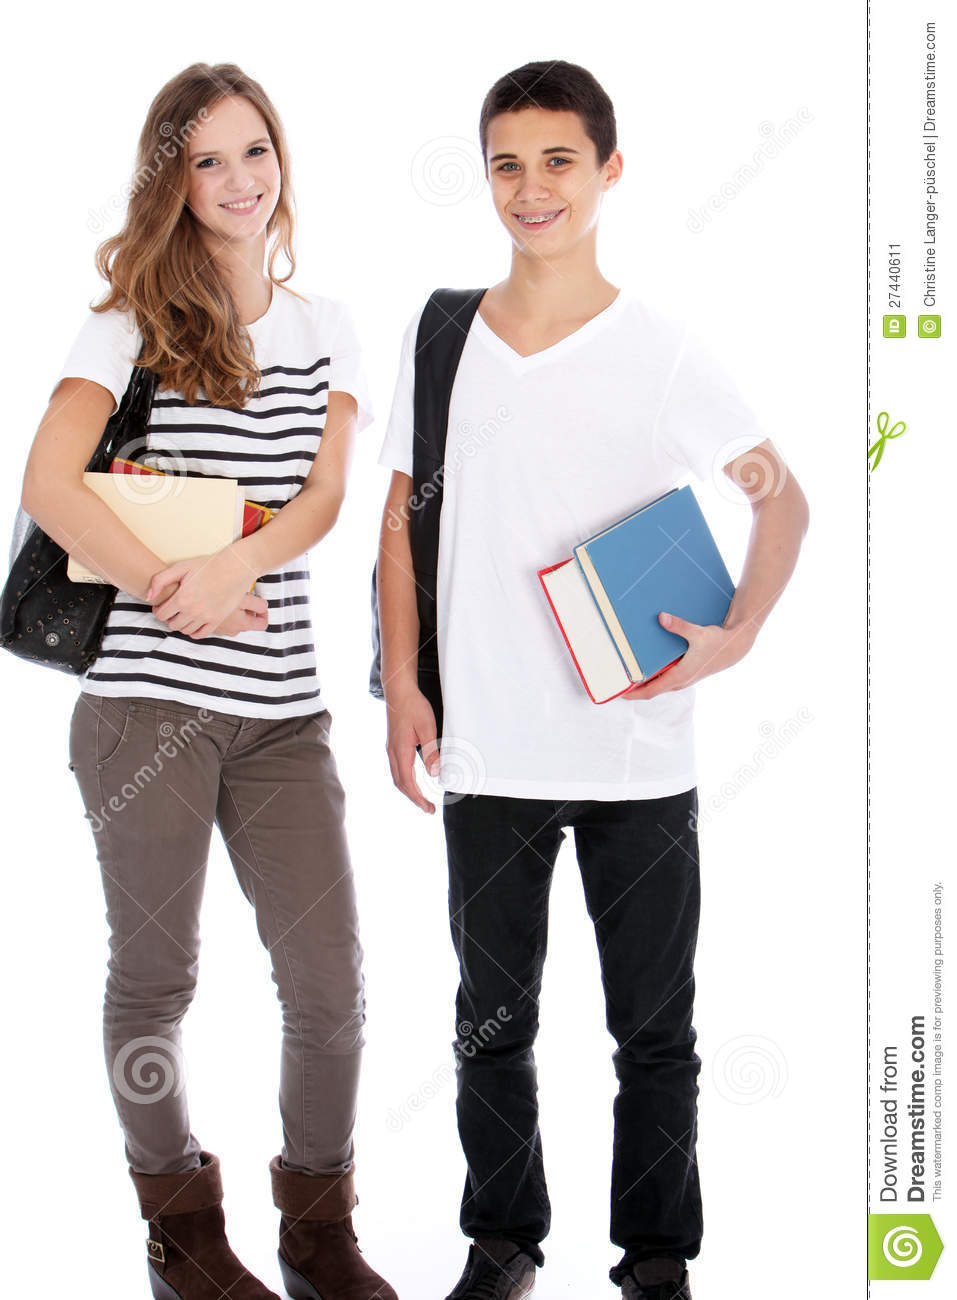 Teenage Boy And Girl With College Books Stock Image - Image: 27440611